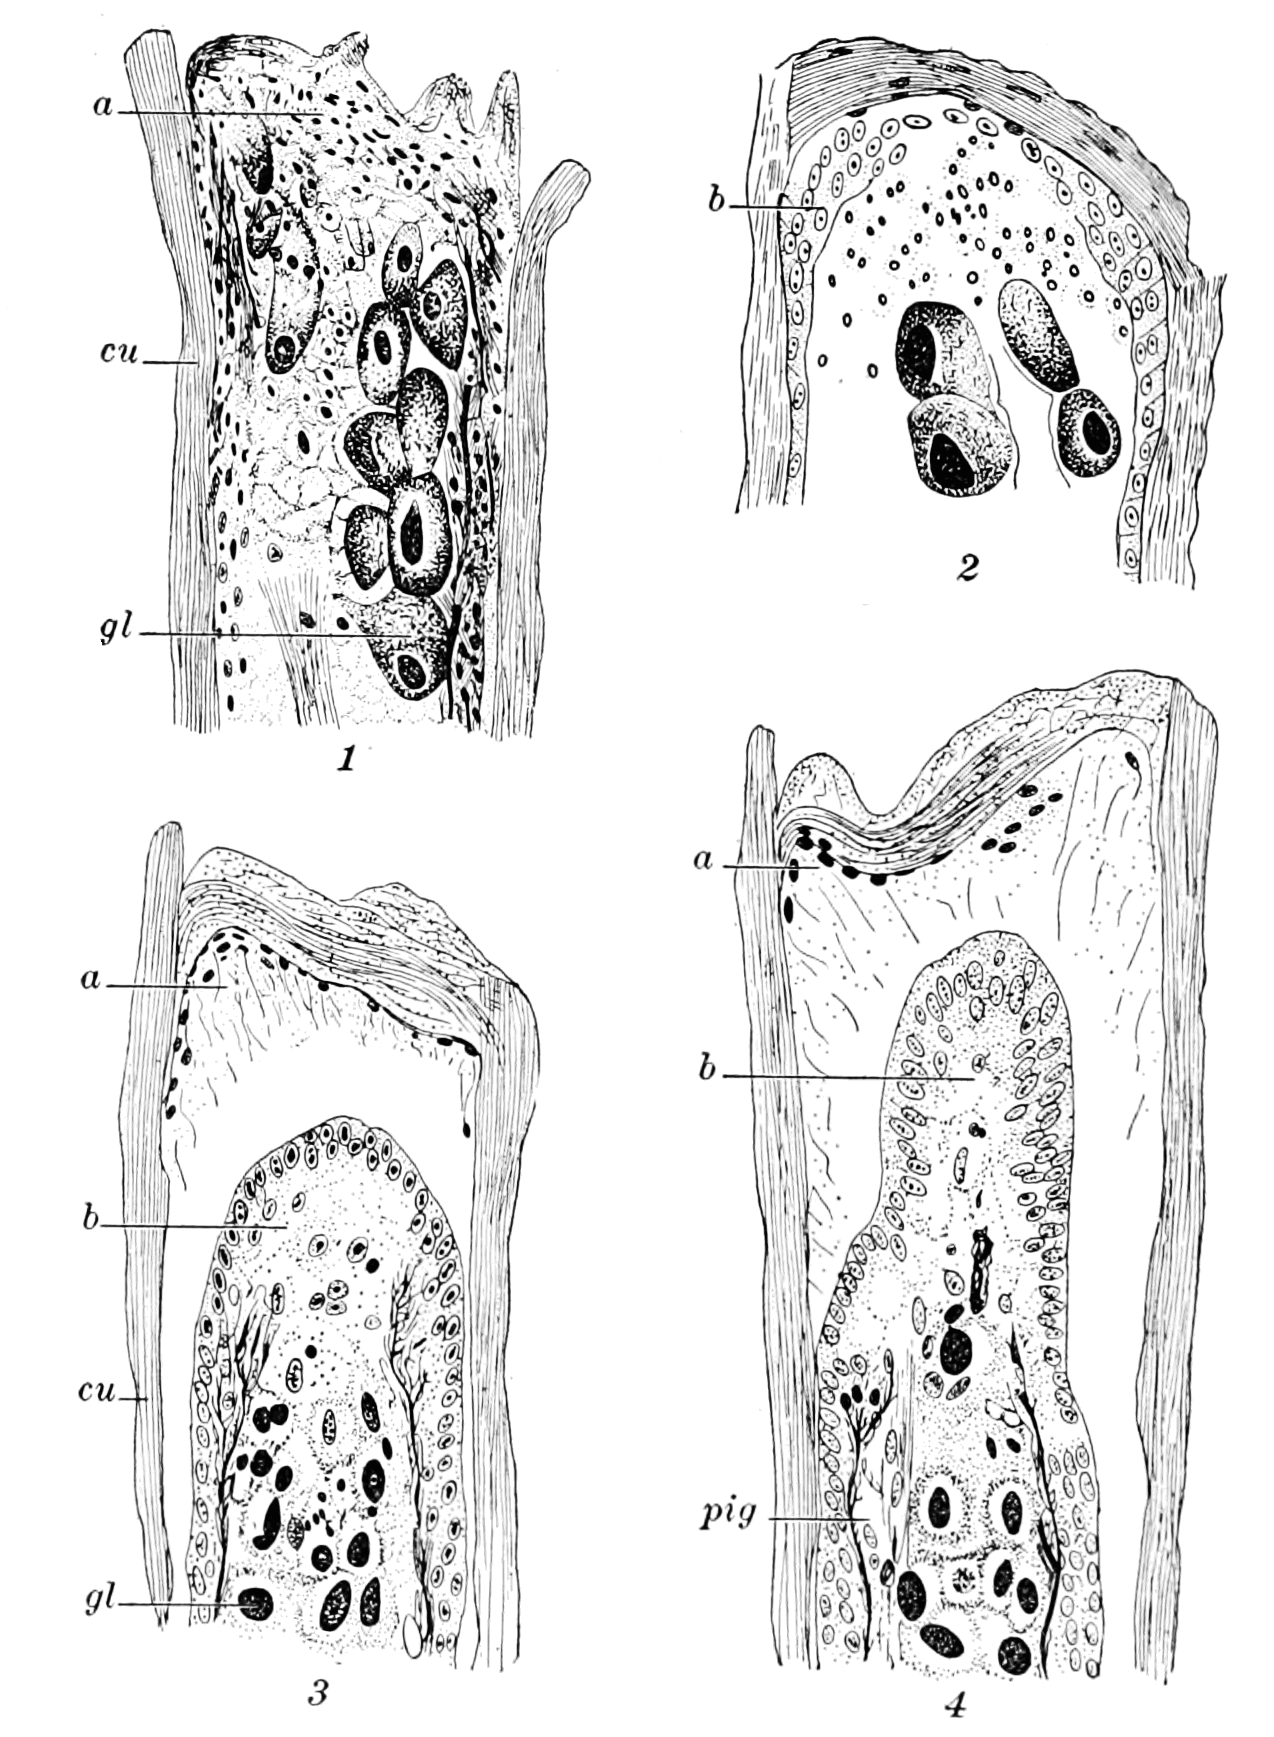 PSM V71 D476 Oniscus antenna sections during regeneration after amputation.png